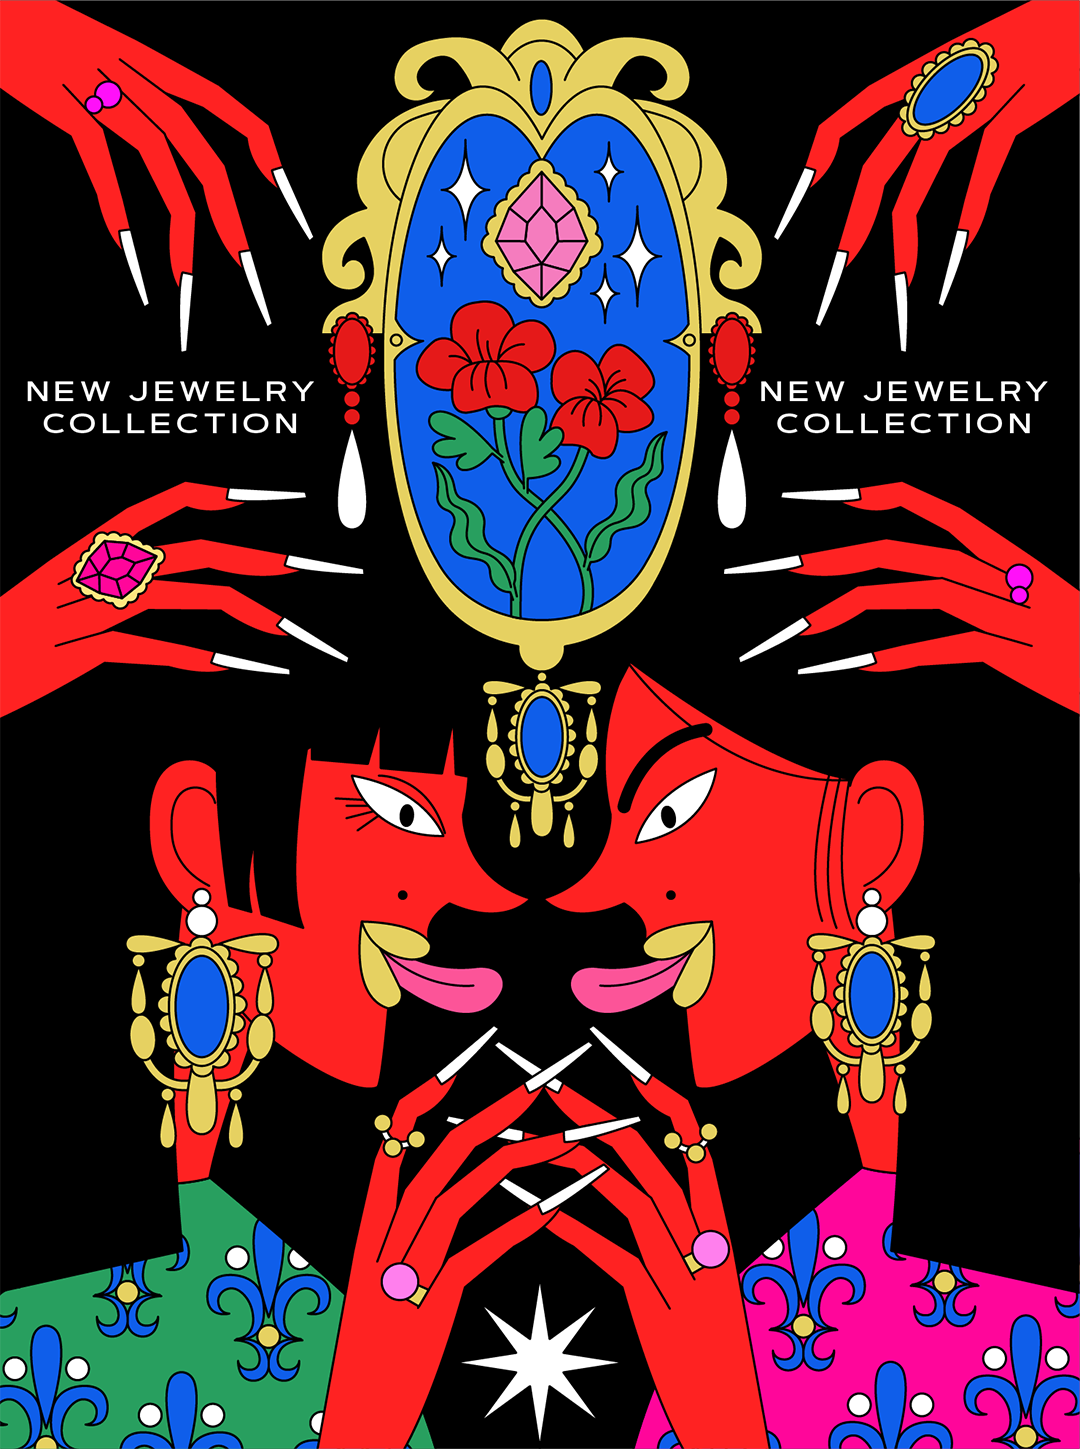 GirlsclubAsia-Illustrator-LuciaPham-Vietnam-New Jewelry Collection